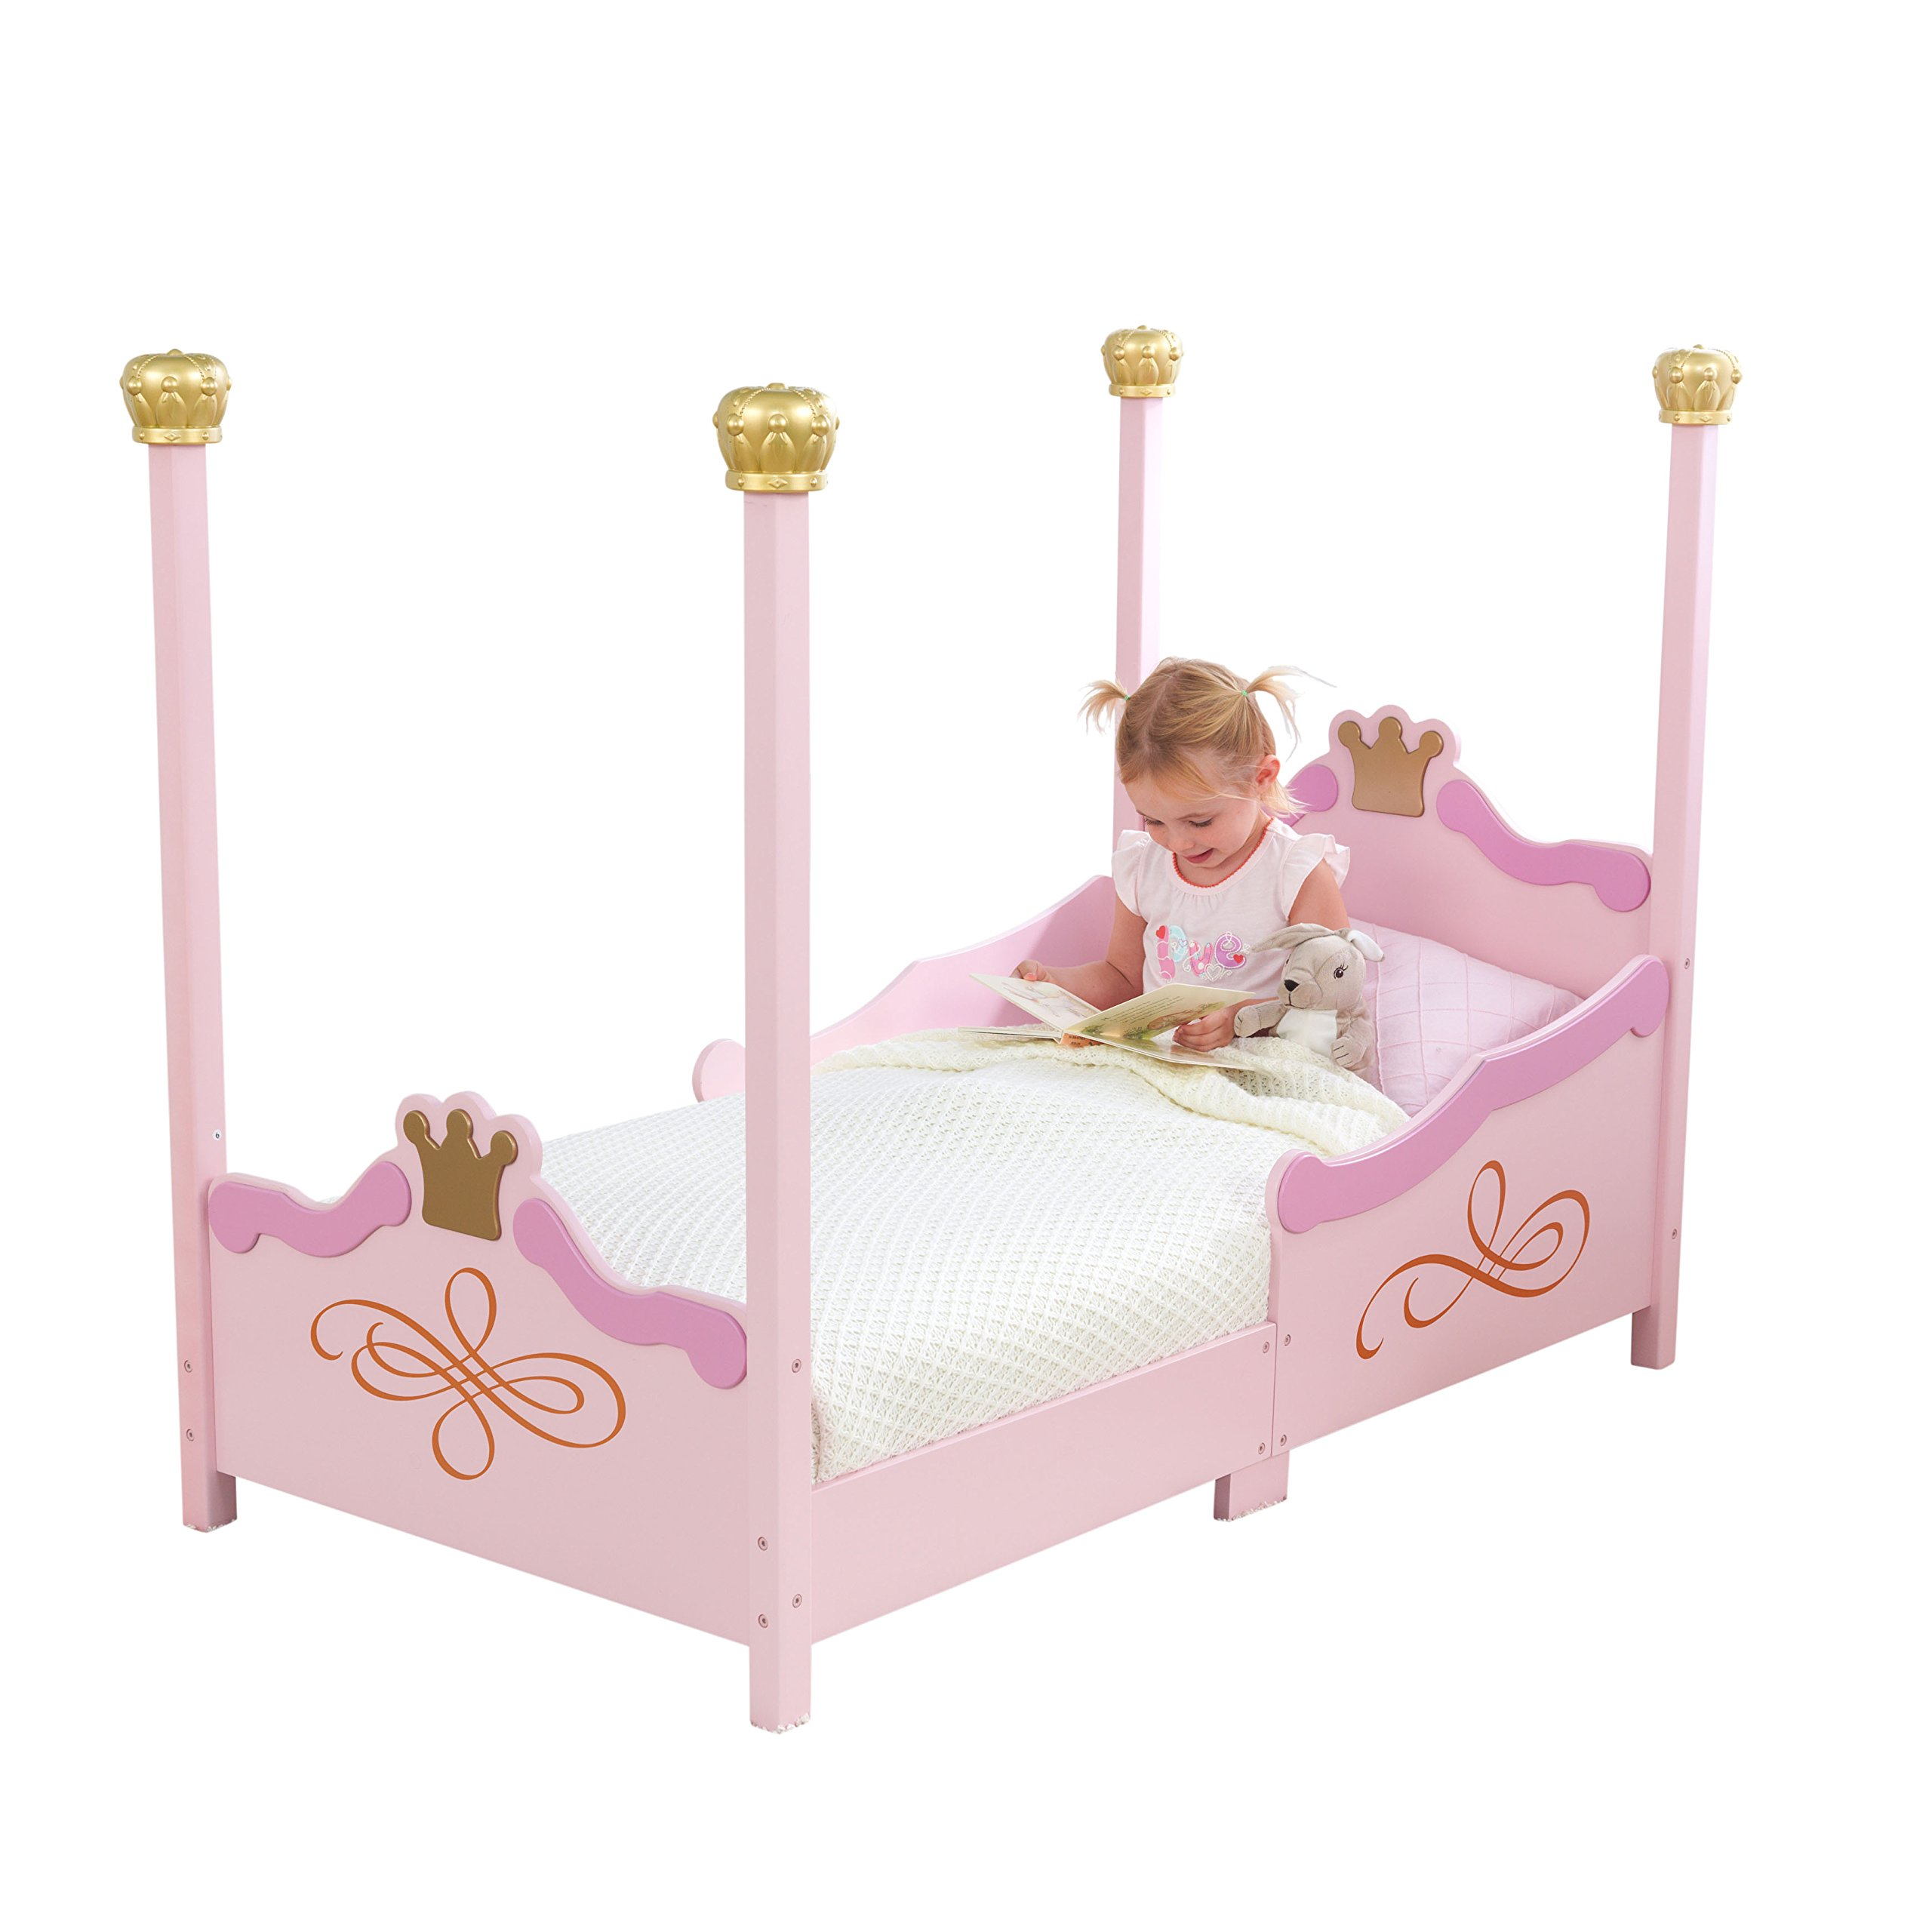 best service 2a44f 8e042 Cheap Princess Carriage Toddler Bed, find Princess Carriage ...